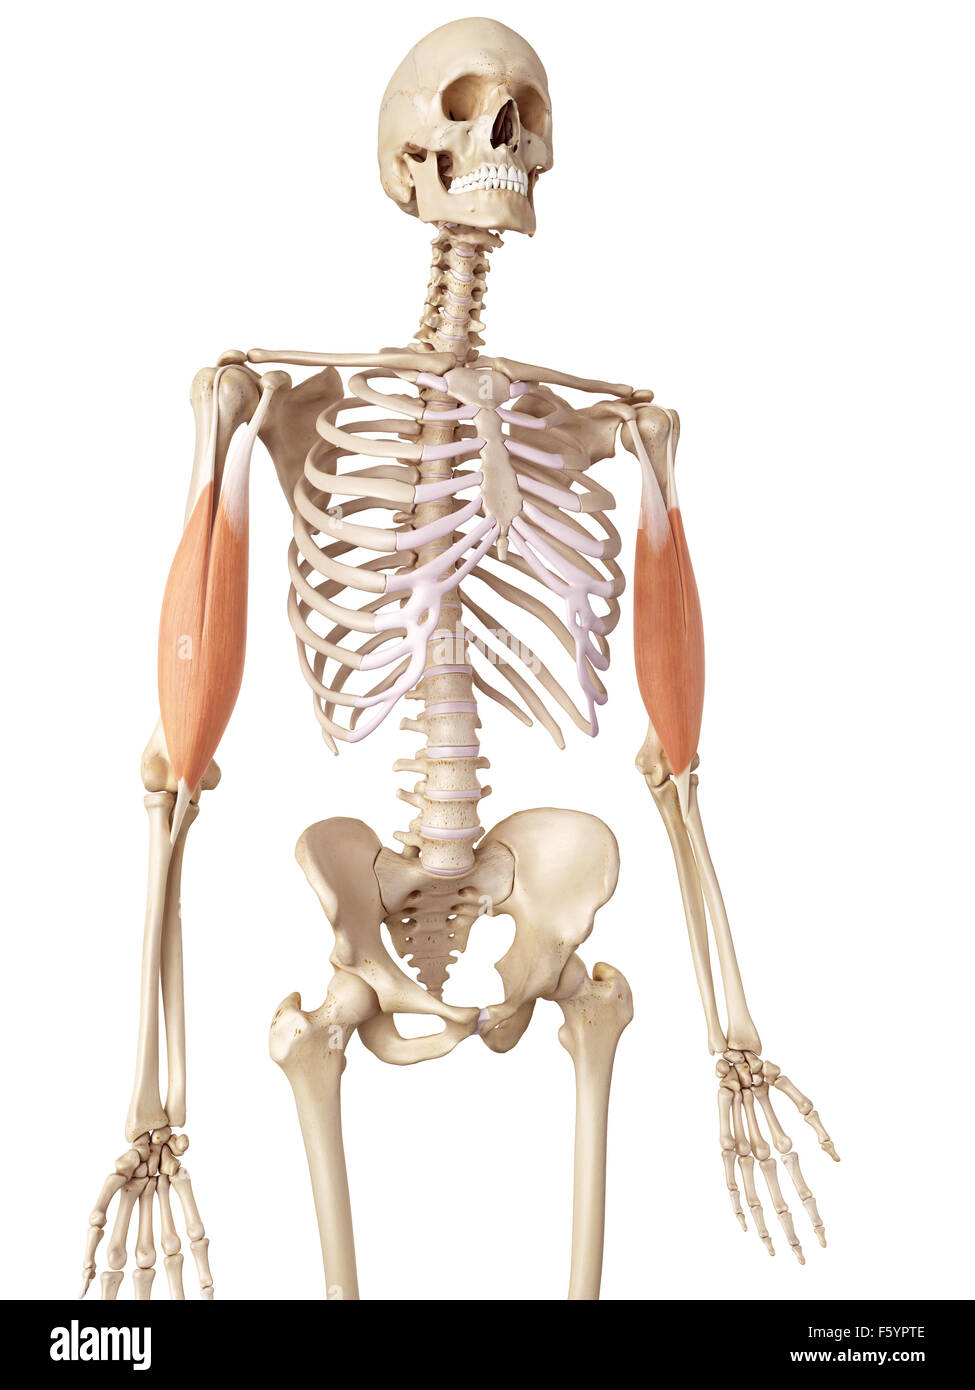 medical accurate illustration of the biceps - Stock Image